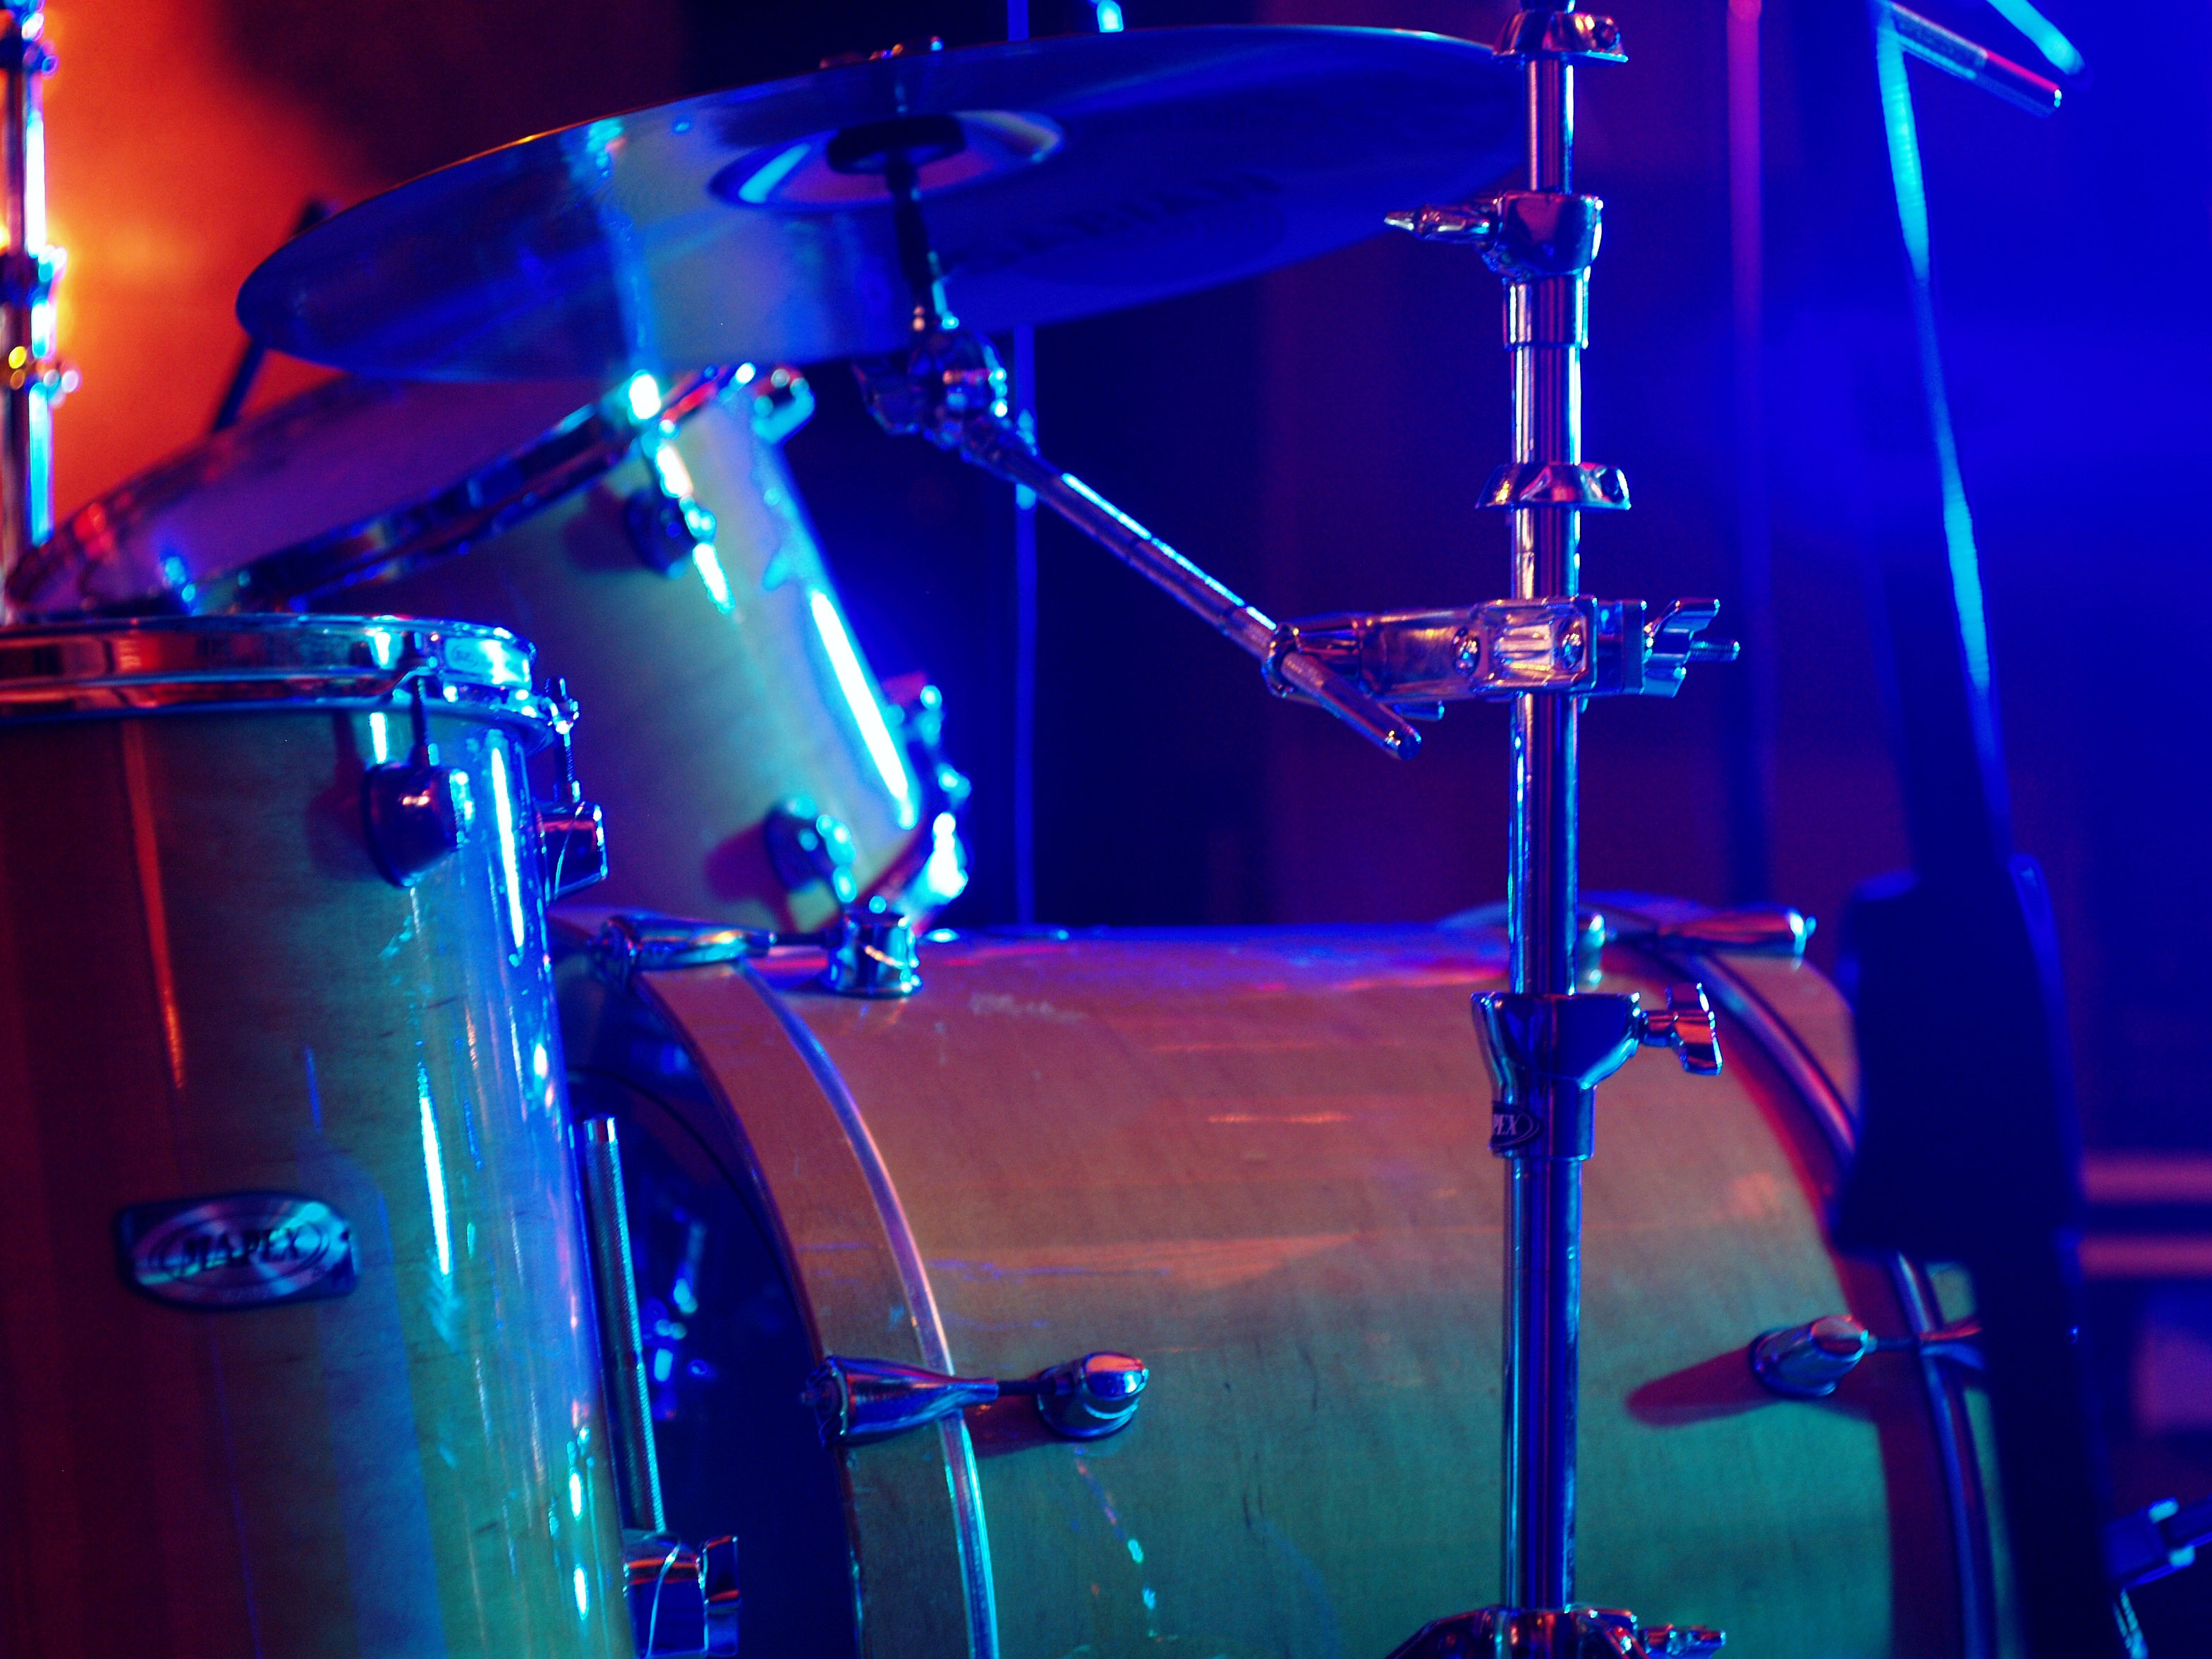 Drumset Instrument On Stage Image Free Stock Photo Public Domain